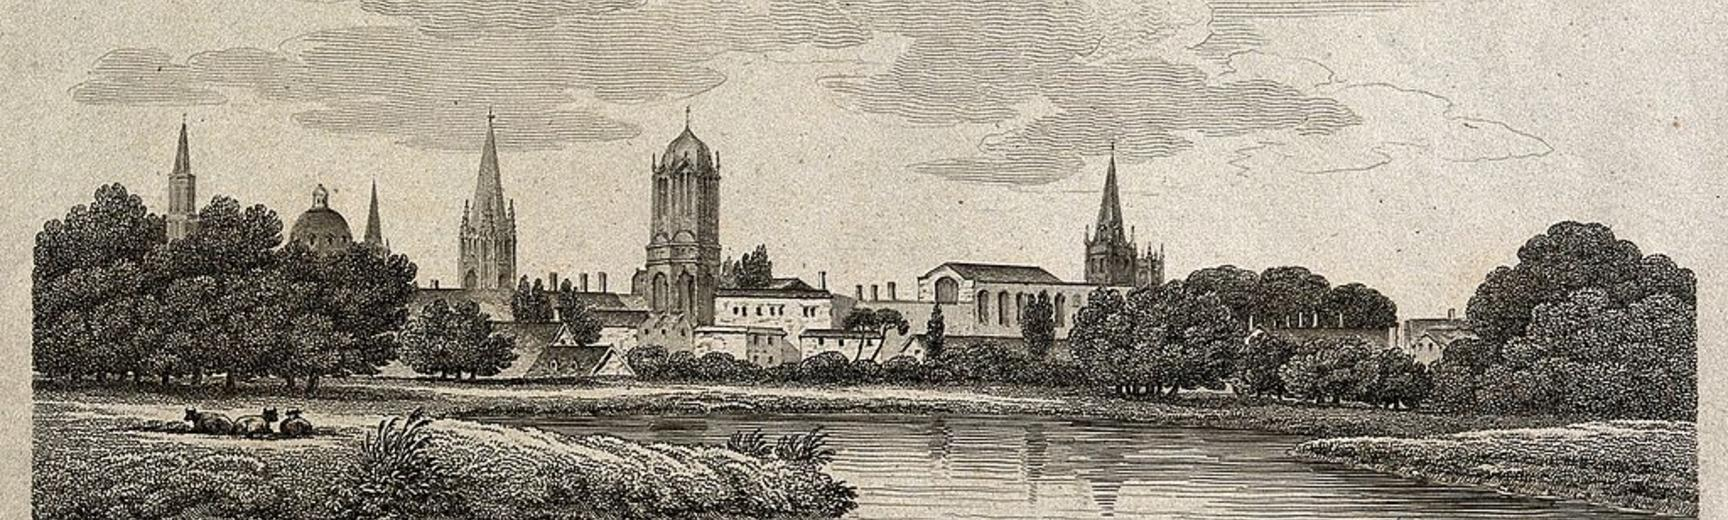 city of oxford view from the cherwell etching by j roffe wellcome v0014236